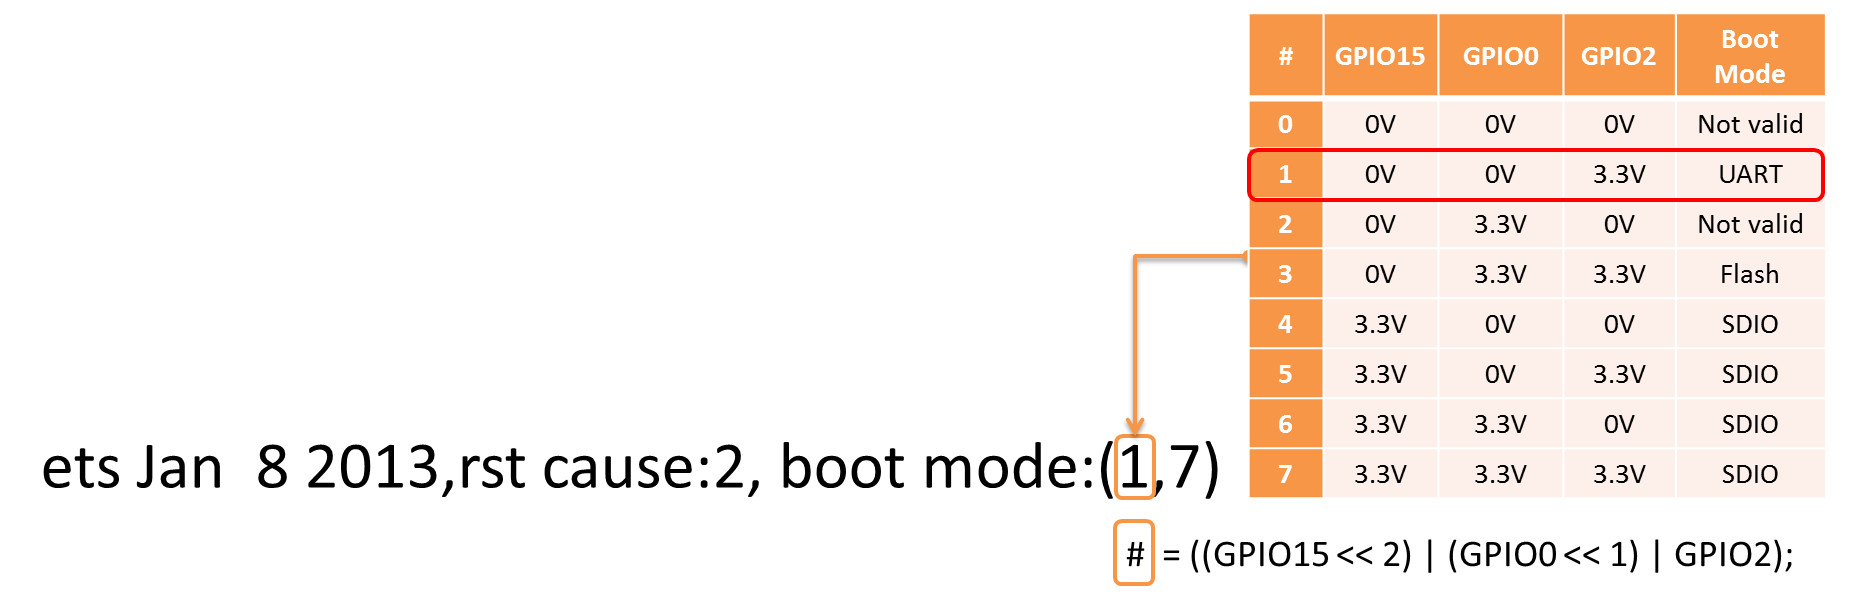 Decoding of boot mode